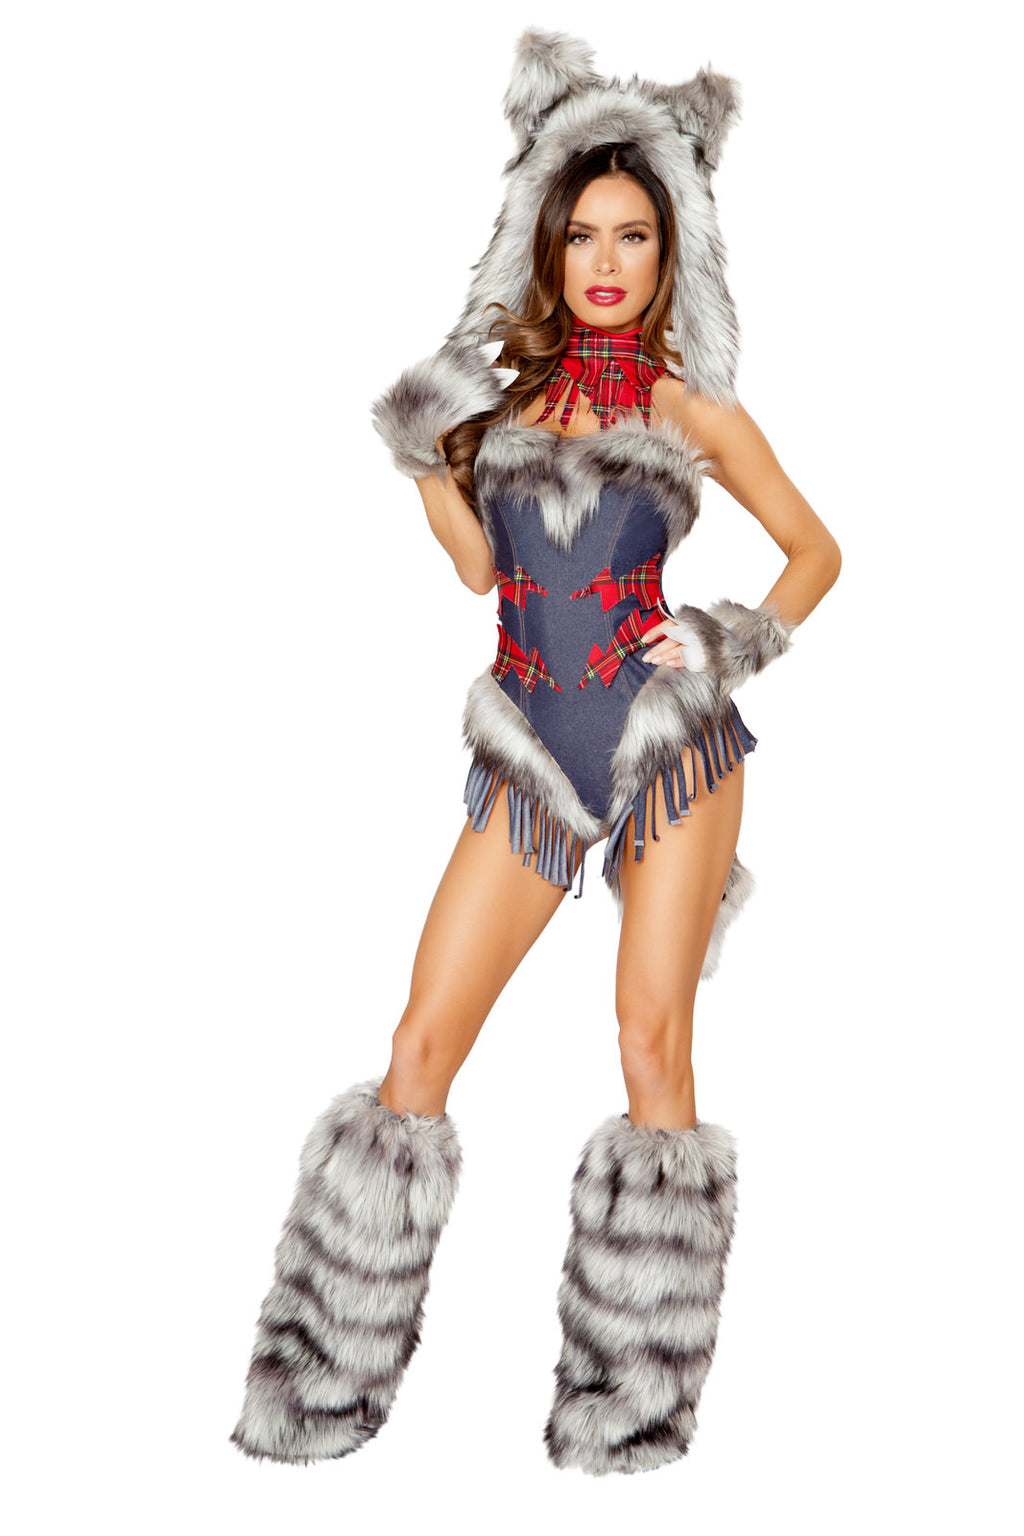 1-PC-Big-Bad-Wolf-Girl-Gray-Fringe-Romper-Party-Costume